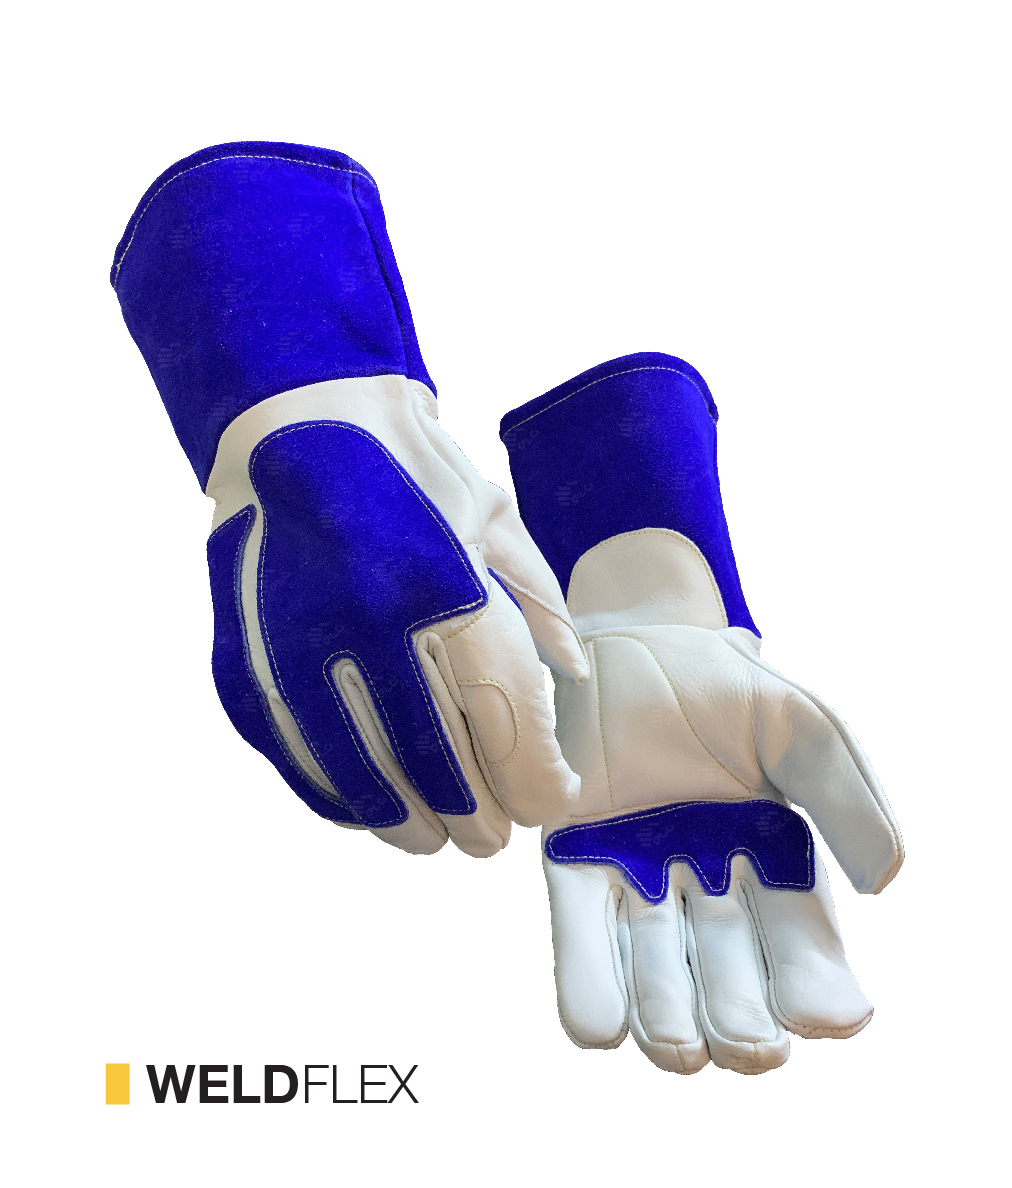 weld flex cut-resistant gloves by elite leather